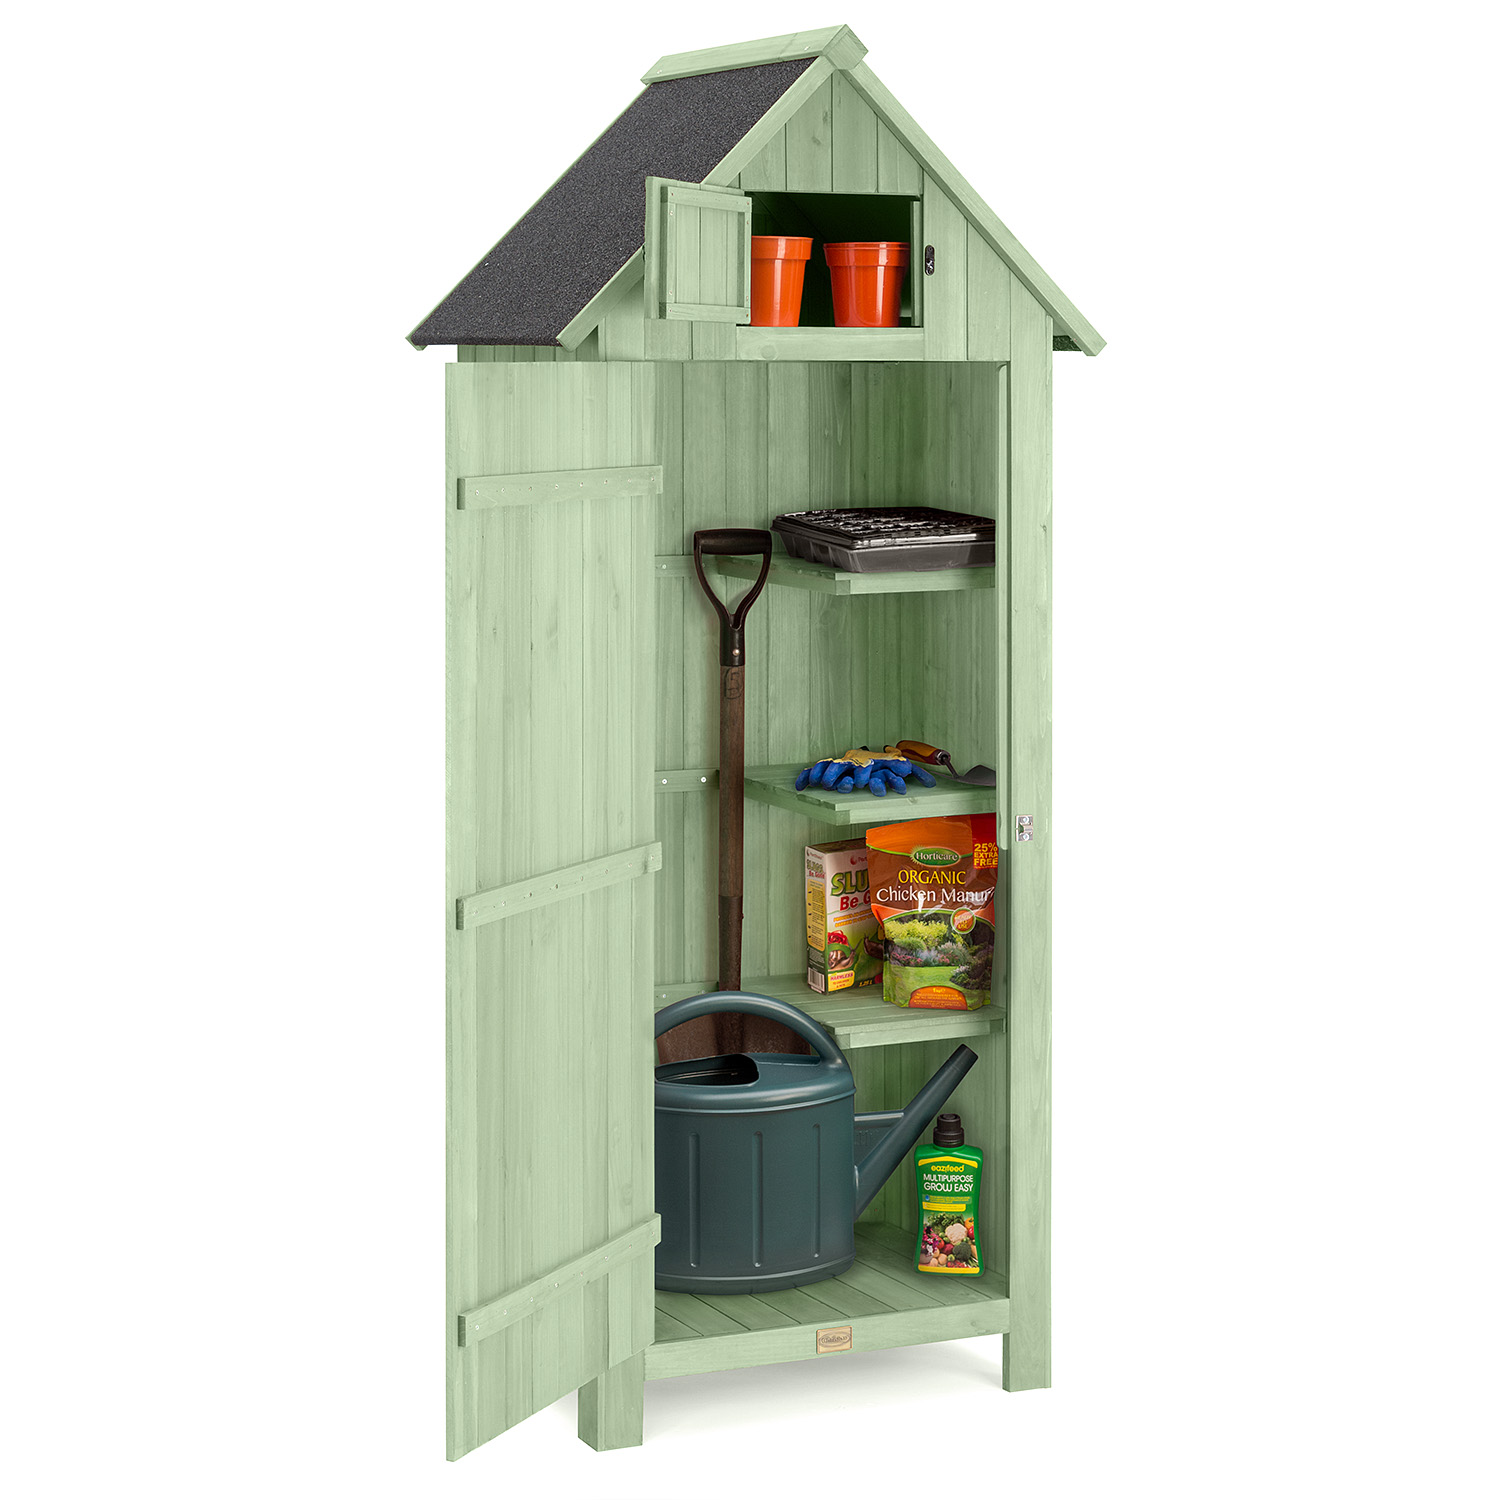 Image of Narrow Garden Shed - Sage Green